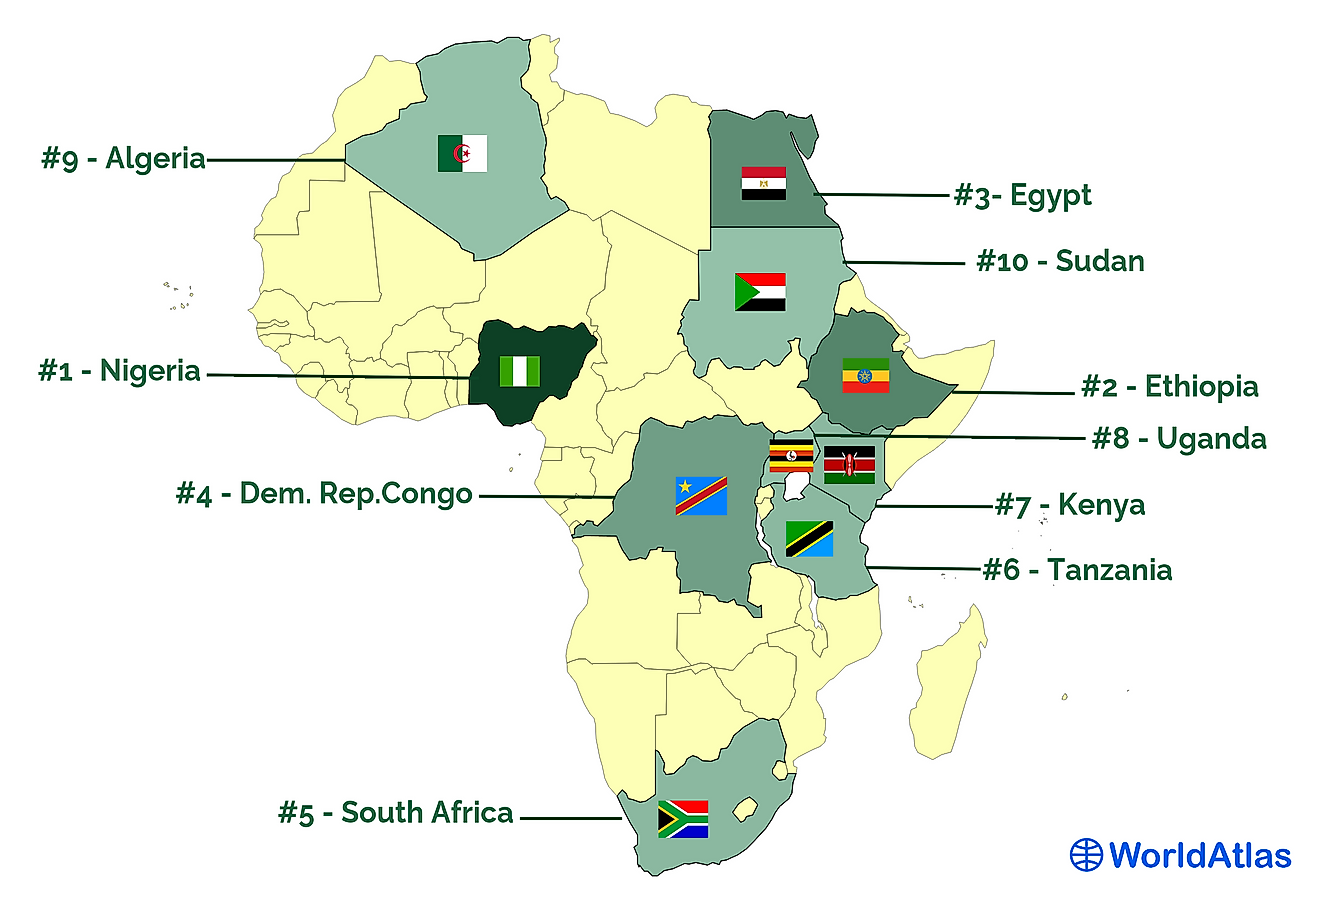 Map showing the 10 most populous countries in Africa.